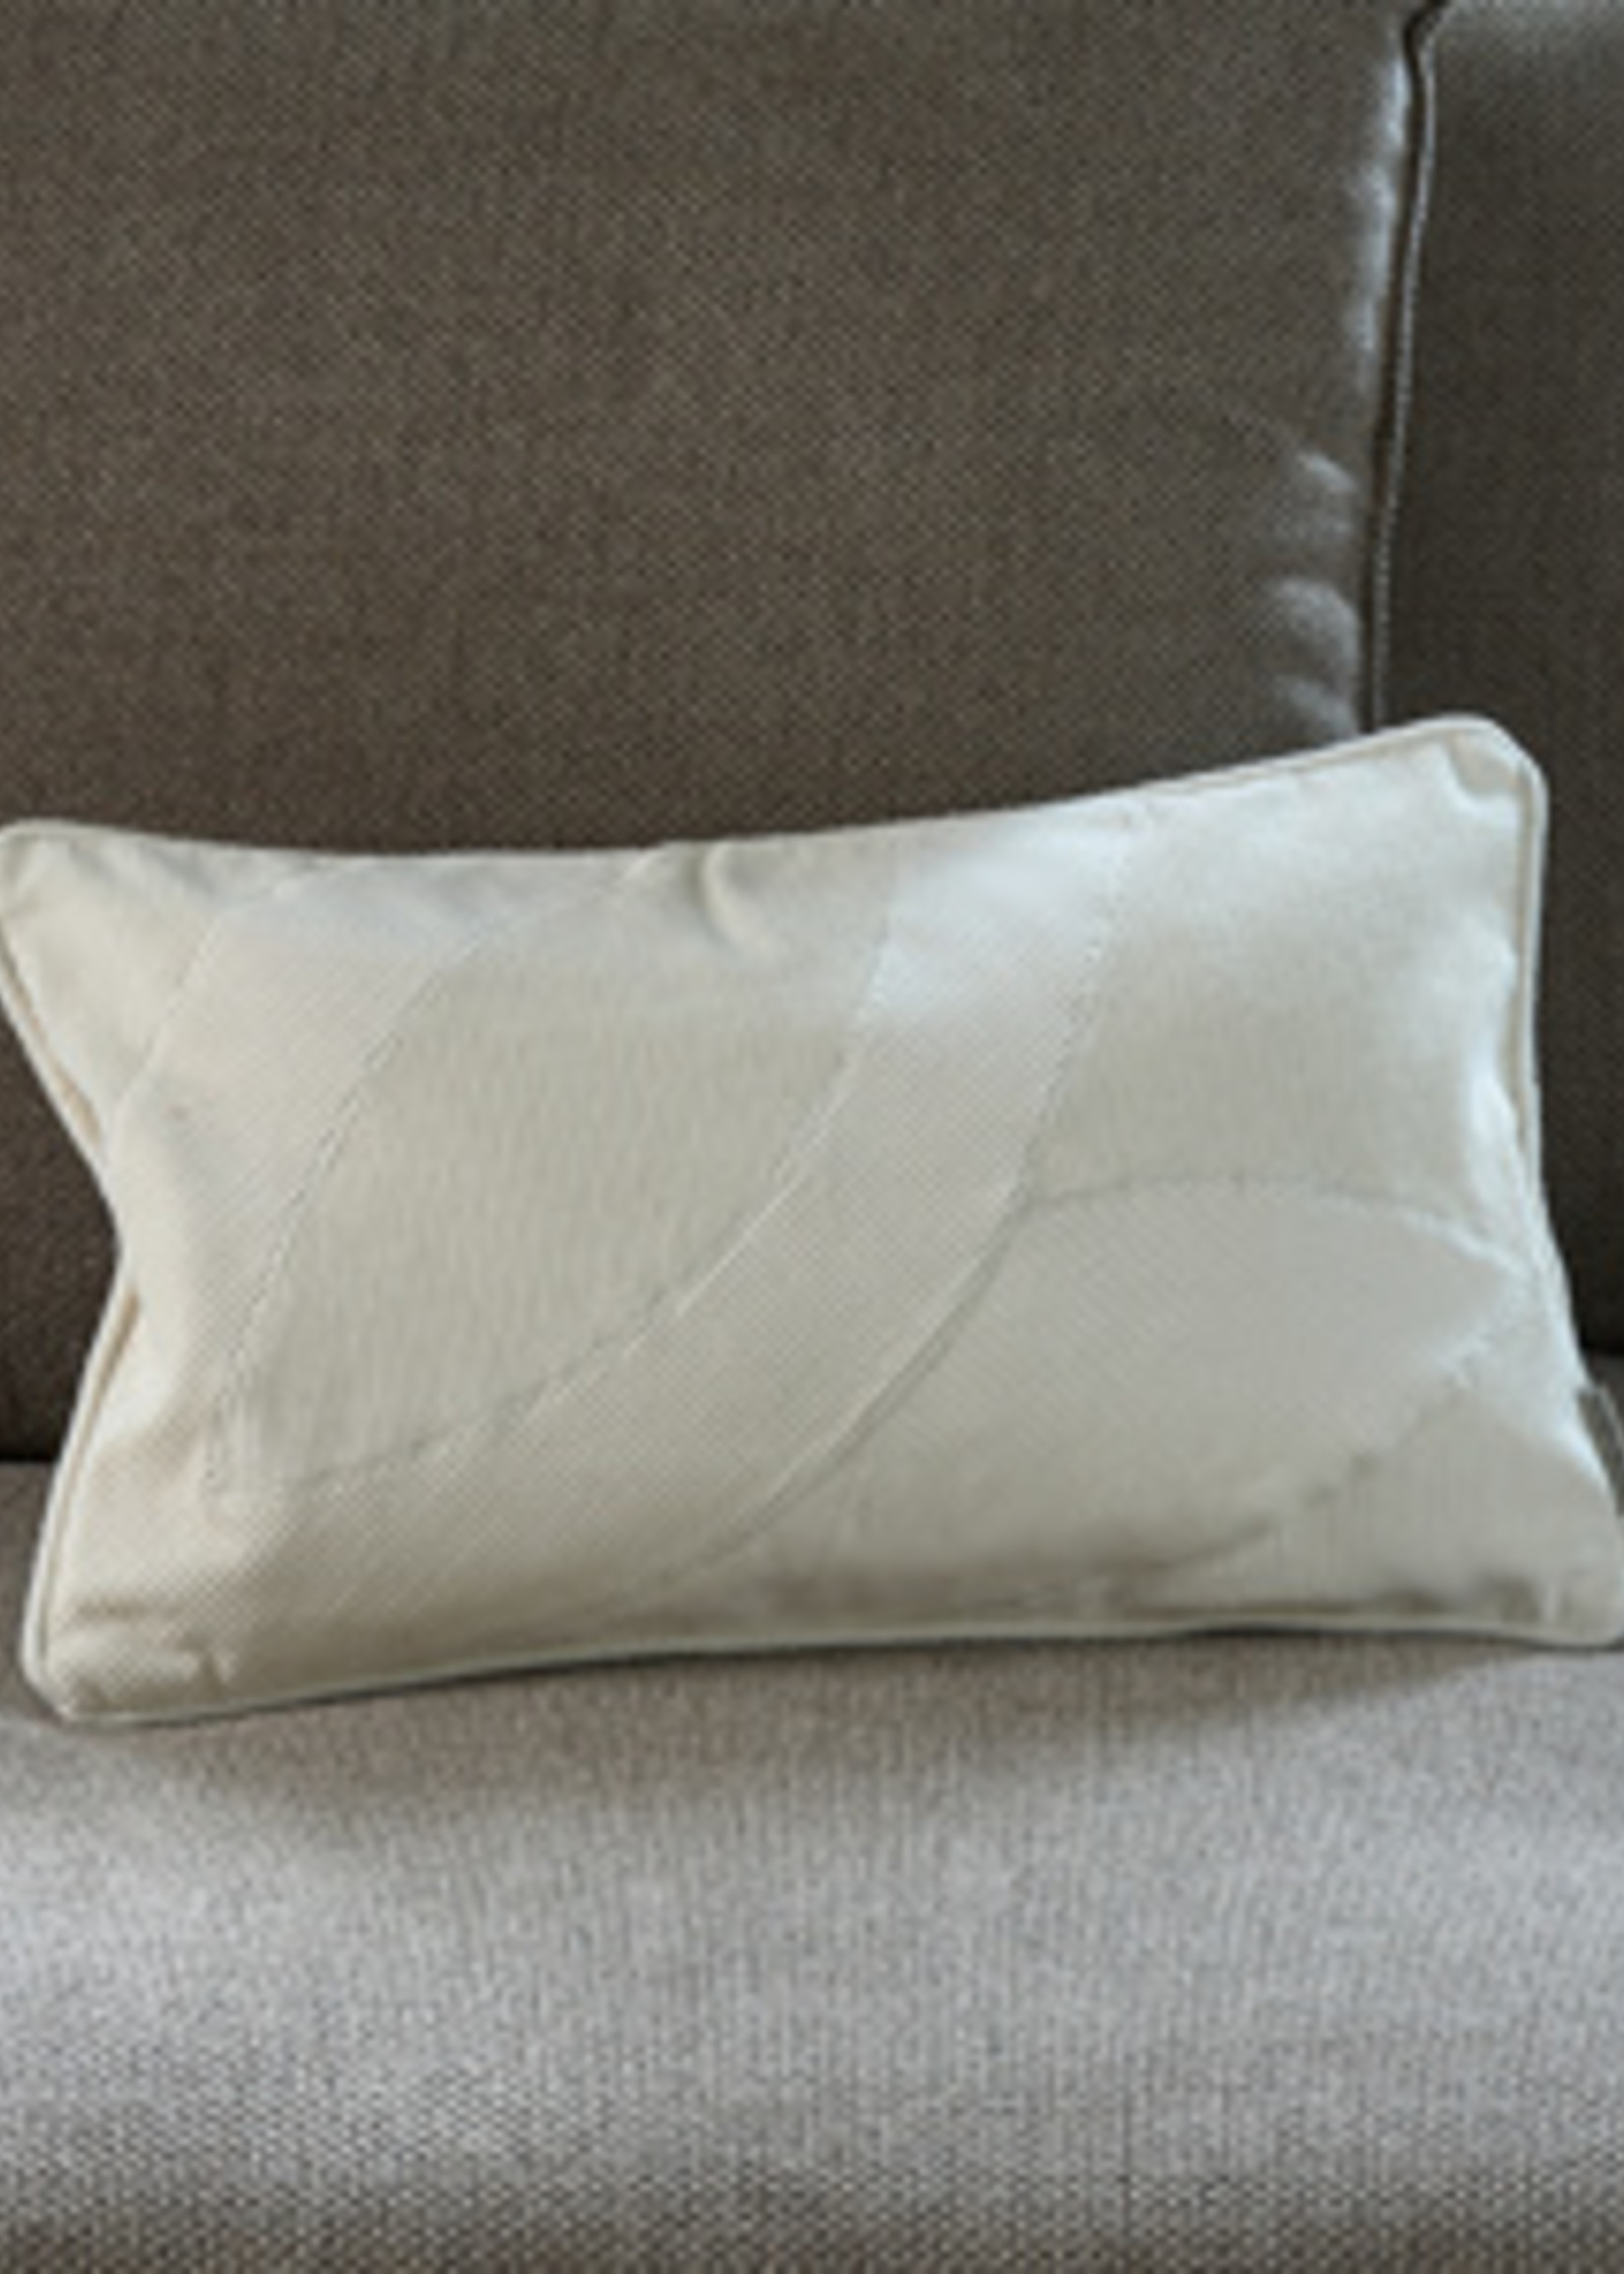 Riviera Maison Purity Rib Leave Pillow Cover 50x30